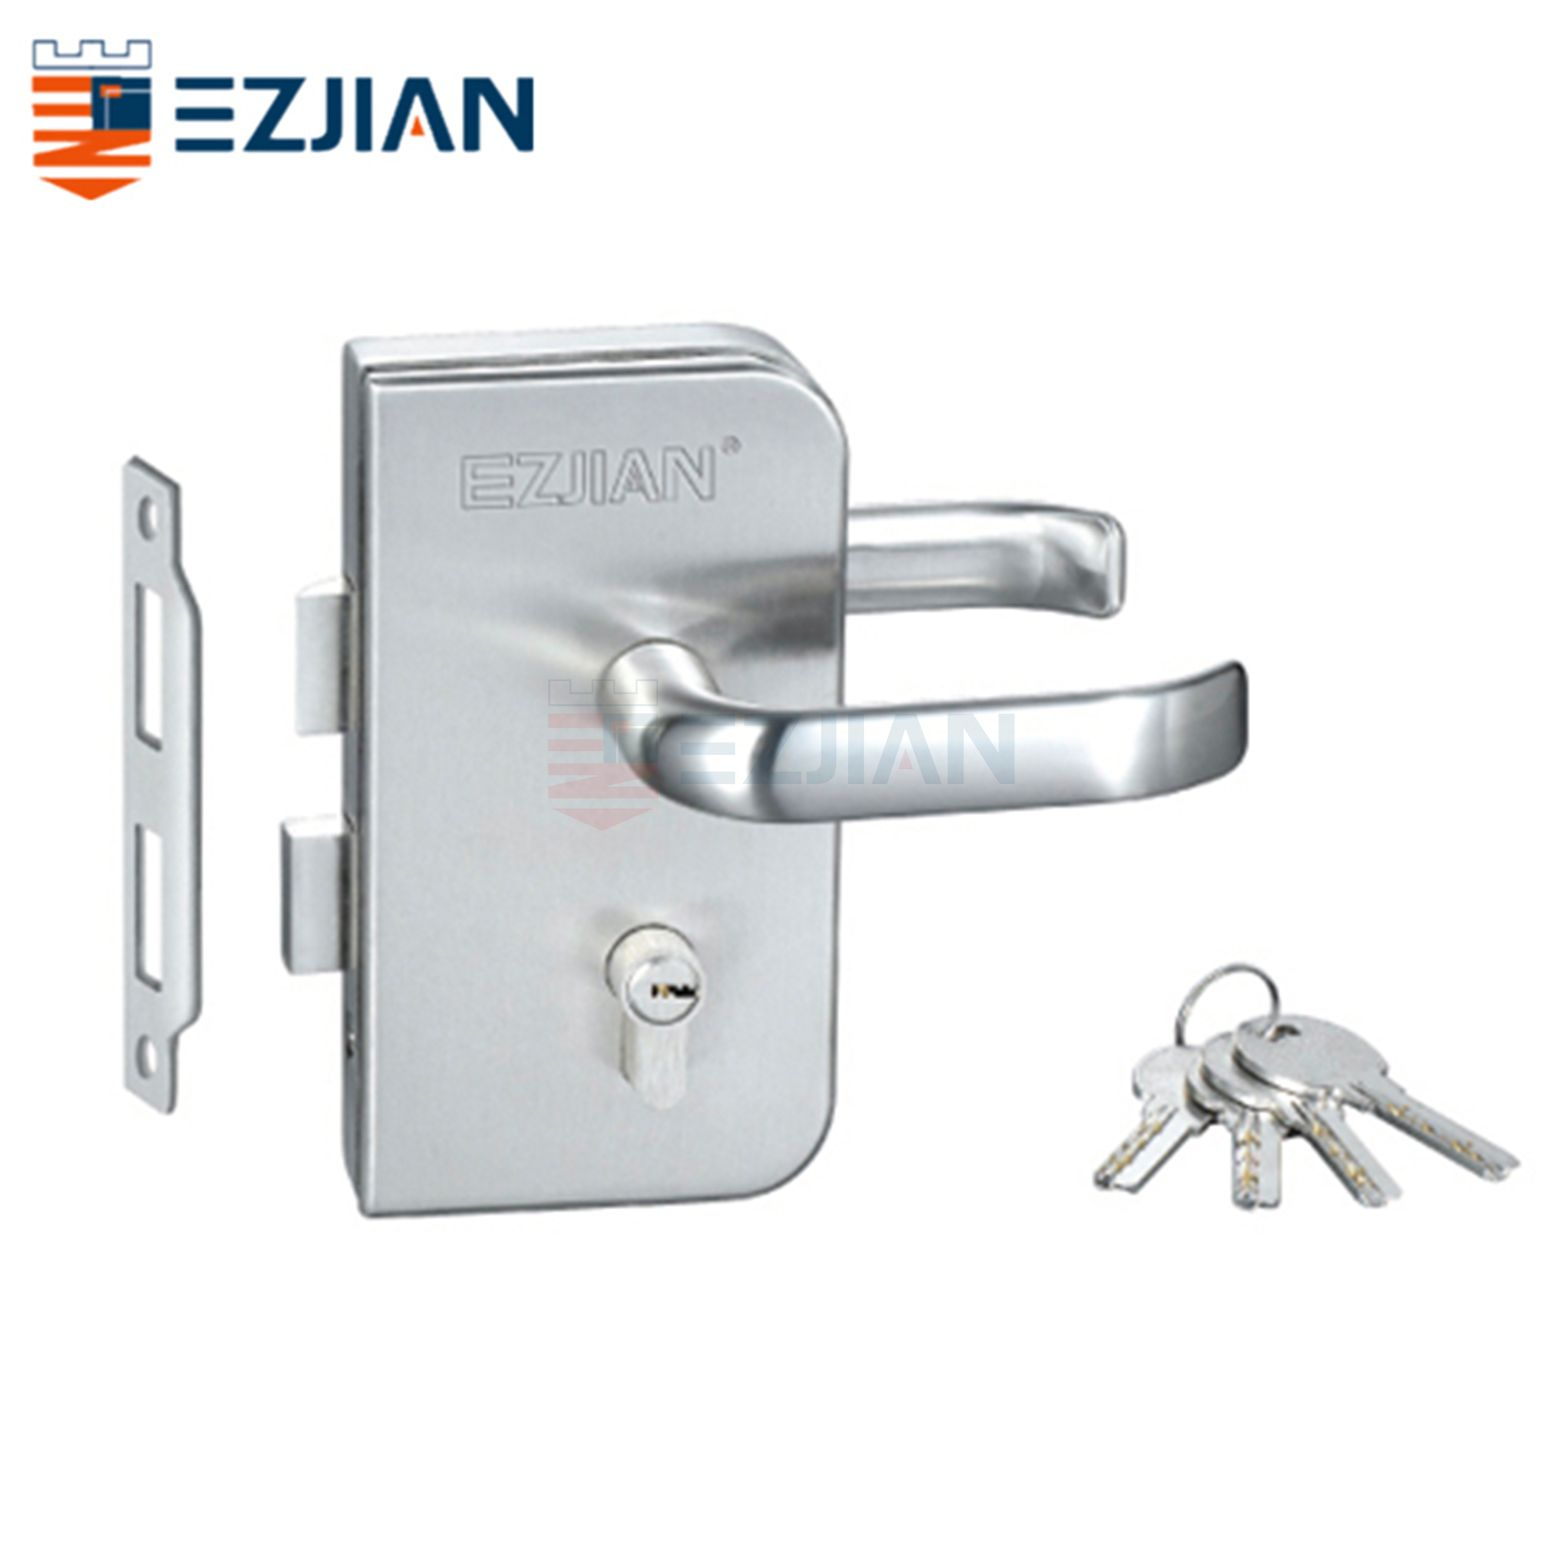 Glass Gate Lock EJ-9002